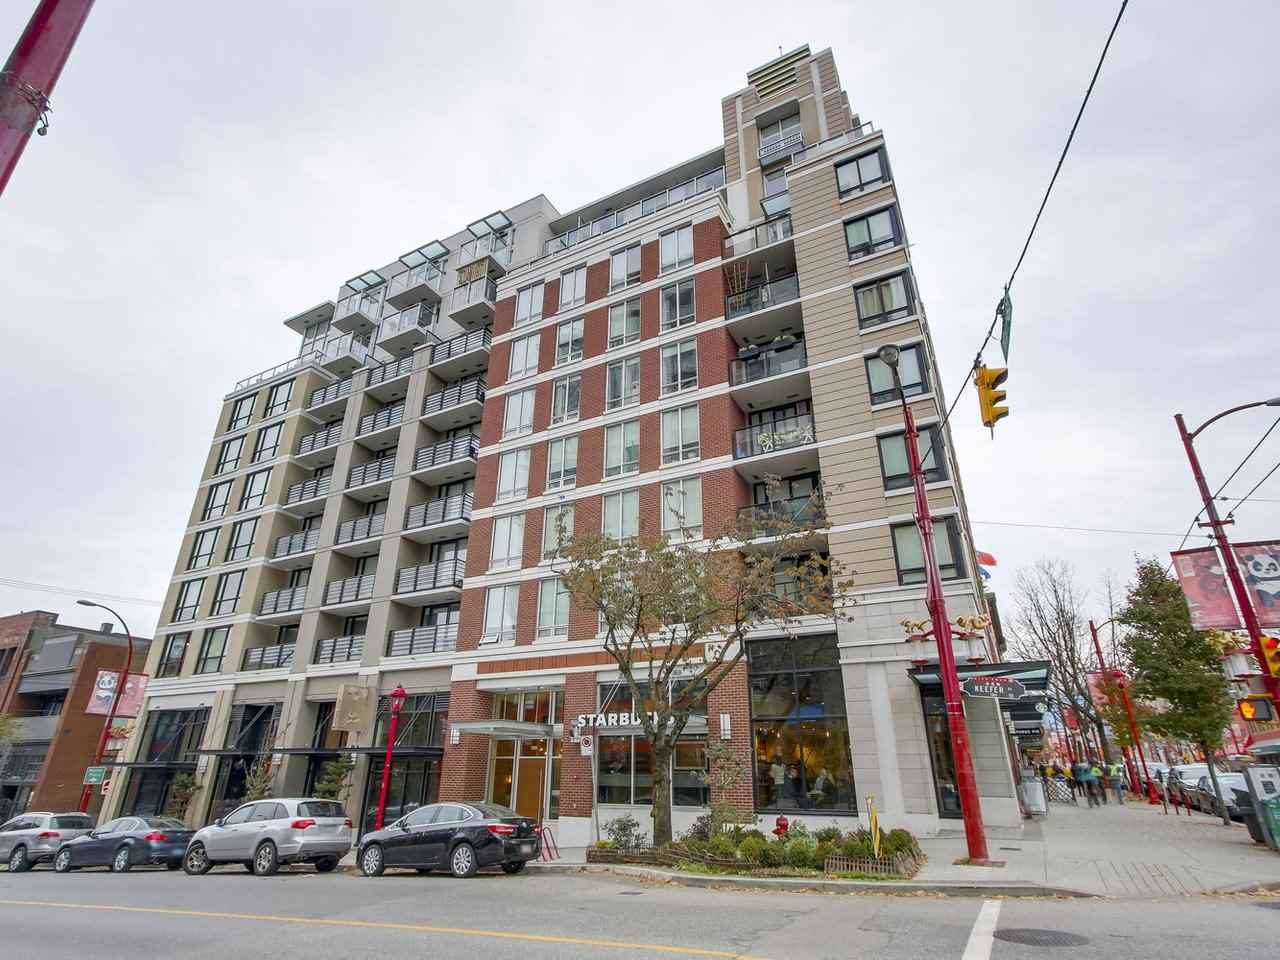 Main Photo: 510 189 KEEFER STREET in Vancouver: Downtown VE Condo for sale (Vancouver East)  : MLS® # R2220669